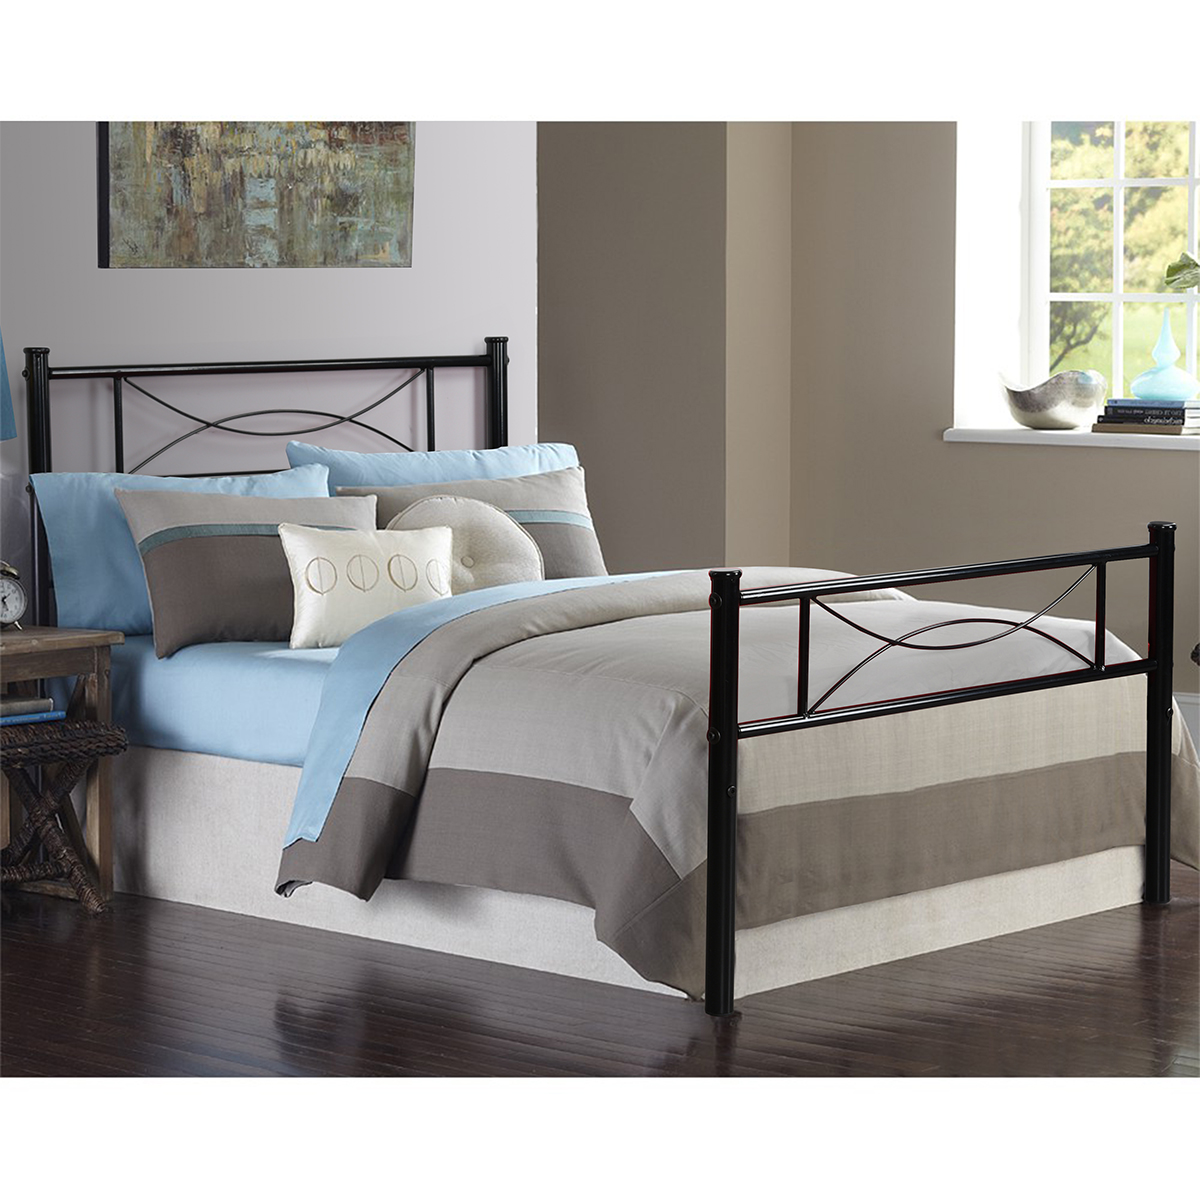 Furniture R Bedroom Metal Bed Frame Platform Base Mattress Foundation Twin and Full